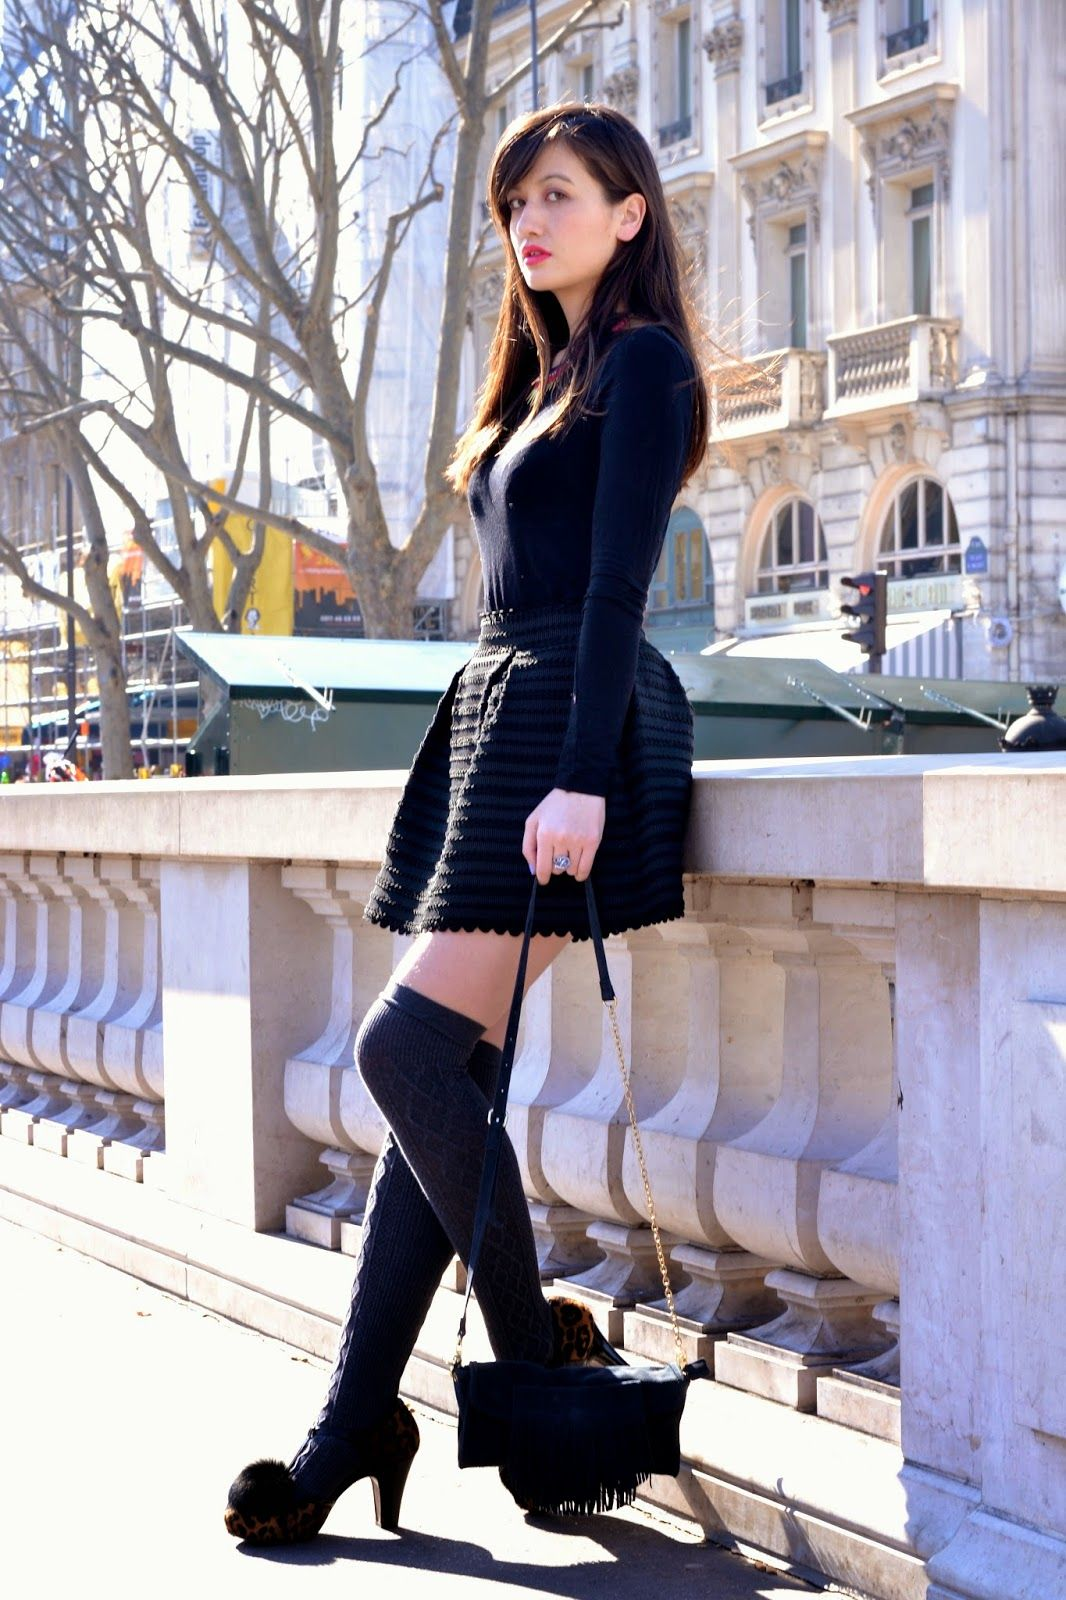 All black outfit